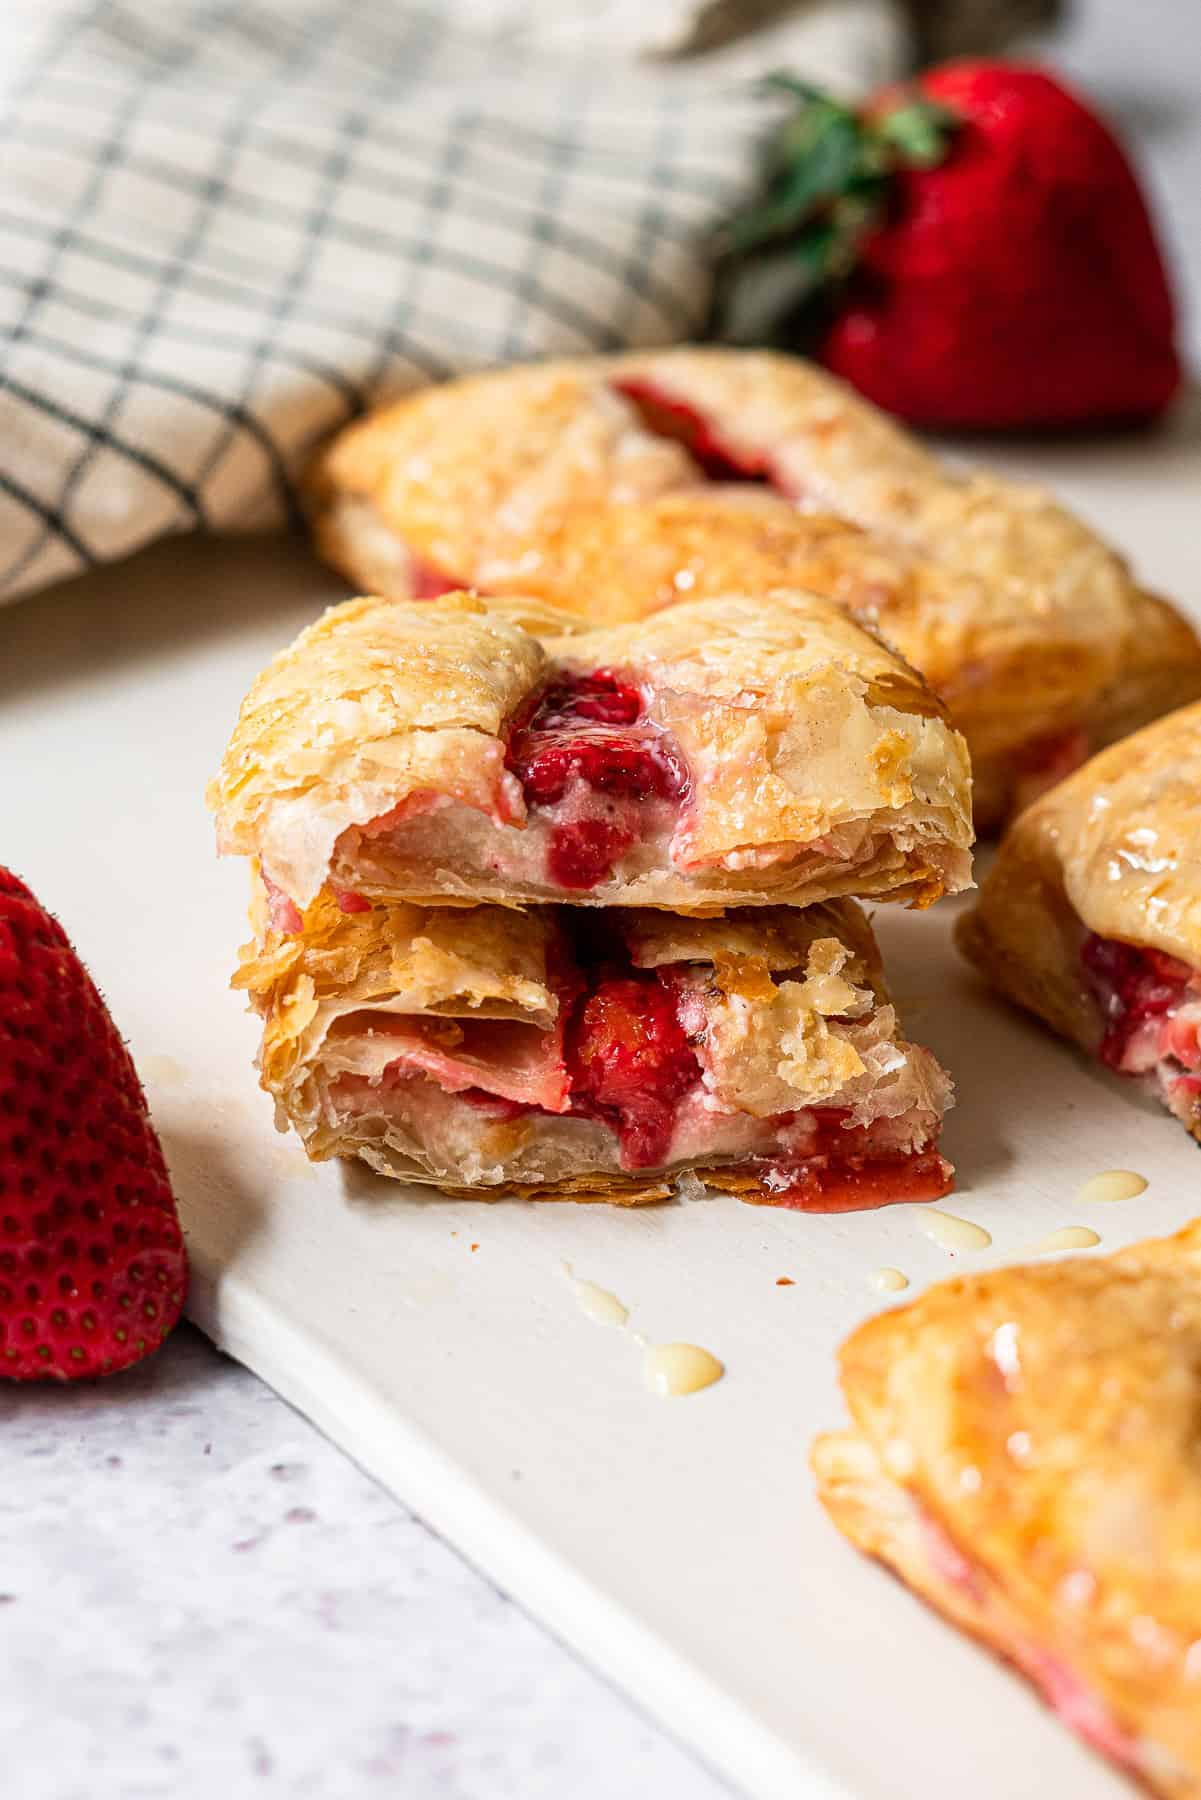 strawberry turnover cut in half and stacked to reveal the cross section